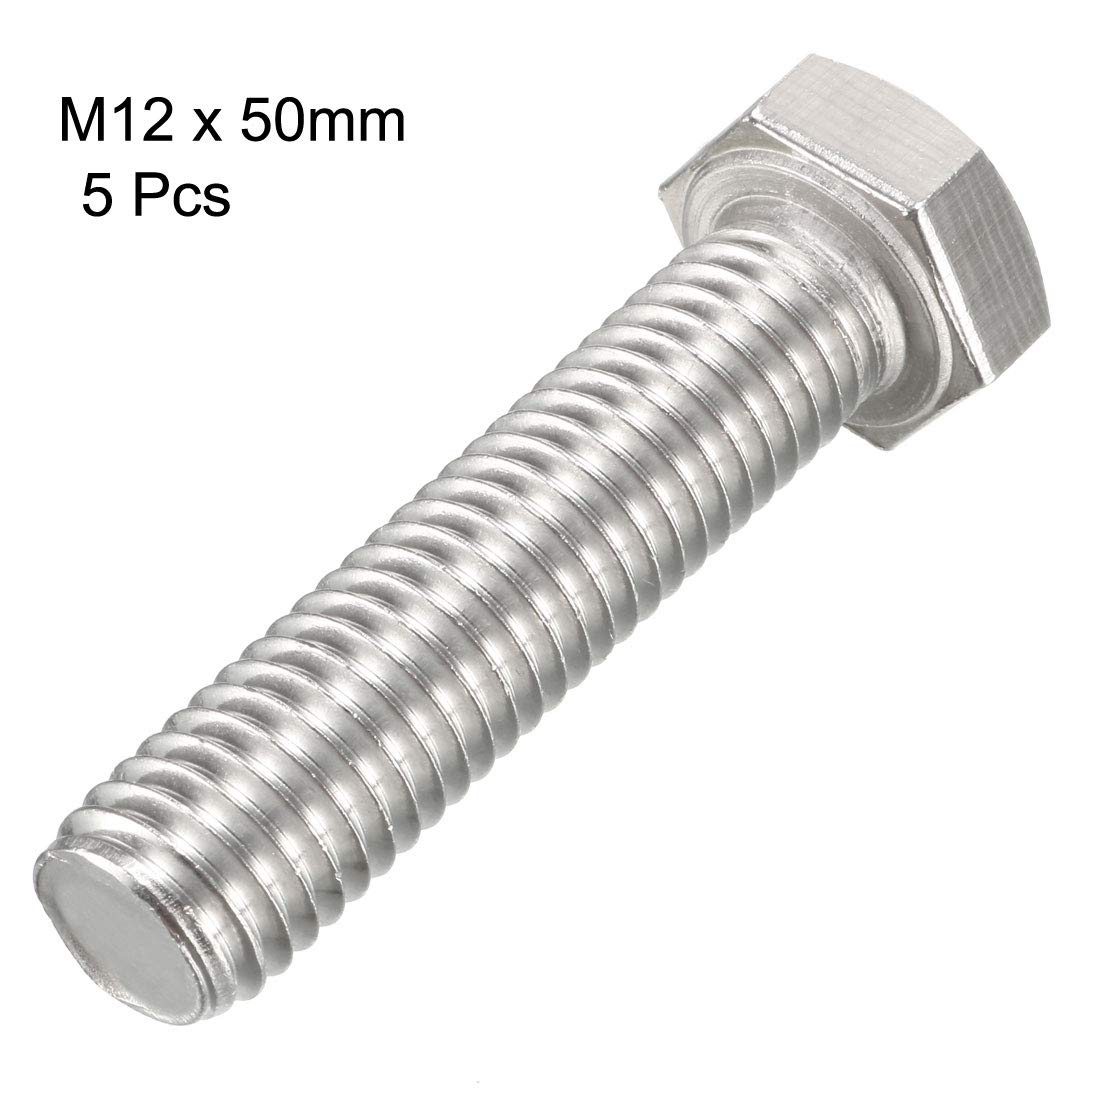 uxcell M12 Thread 50mm 304 Stainless Steel Hex Head Left Hand Screw Bolts Fastener